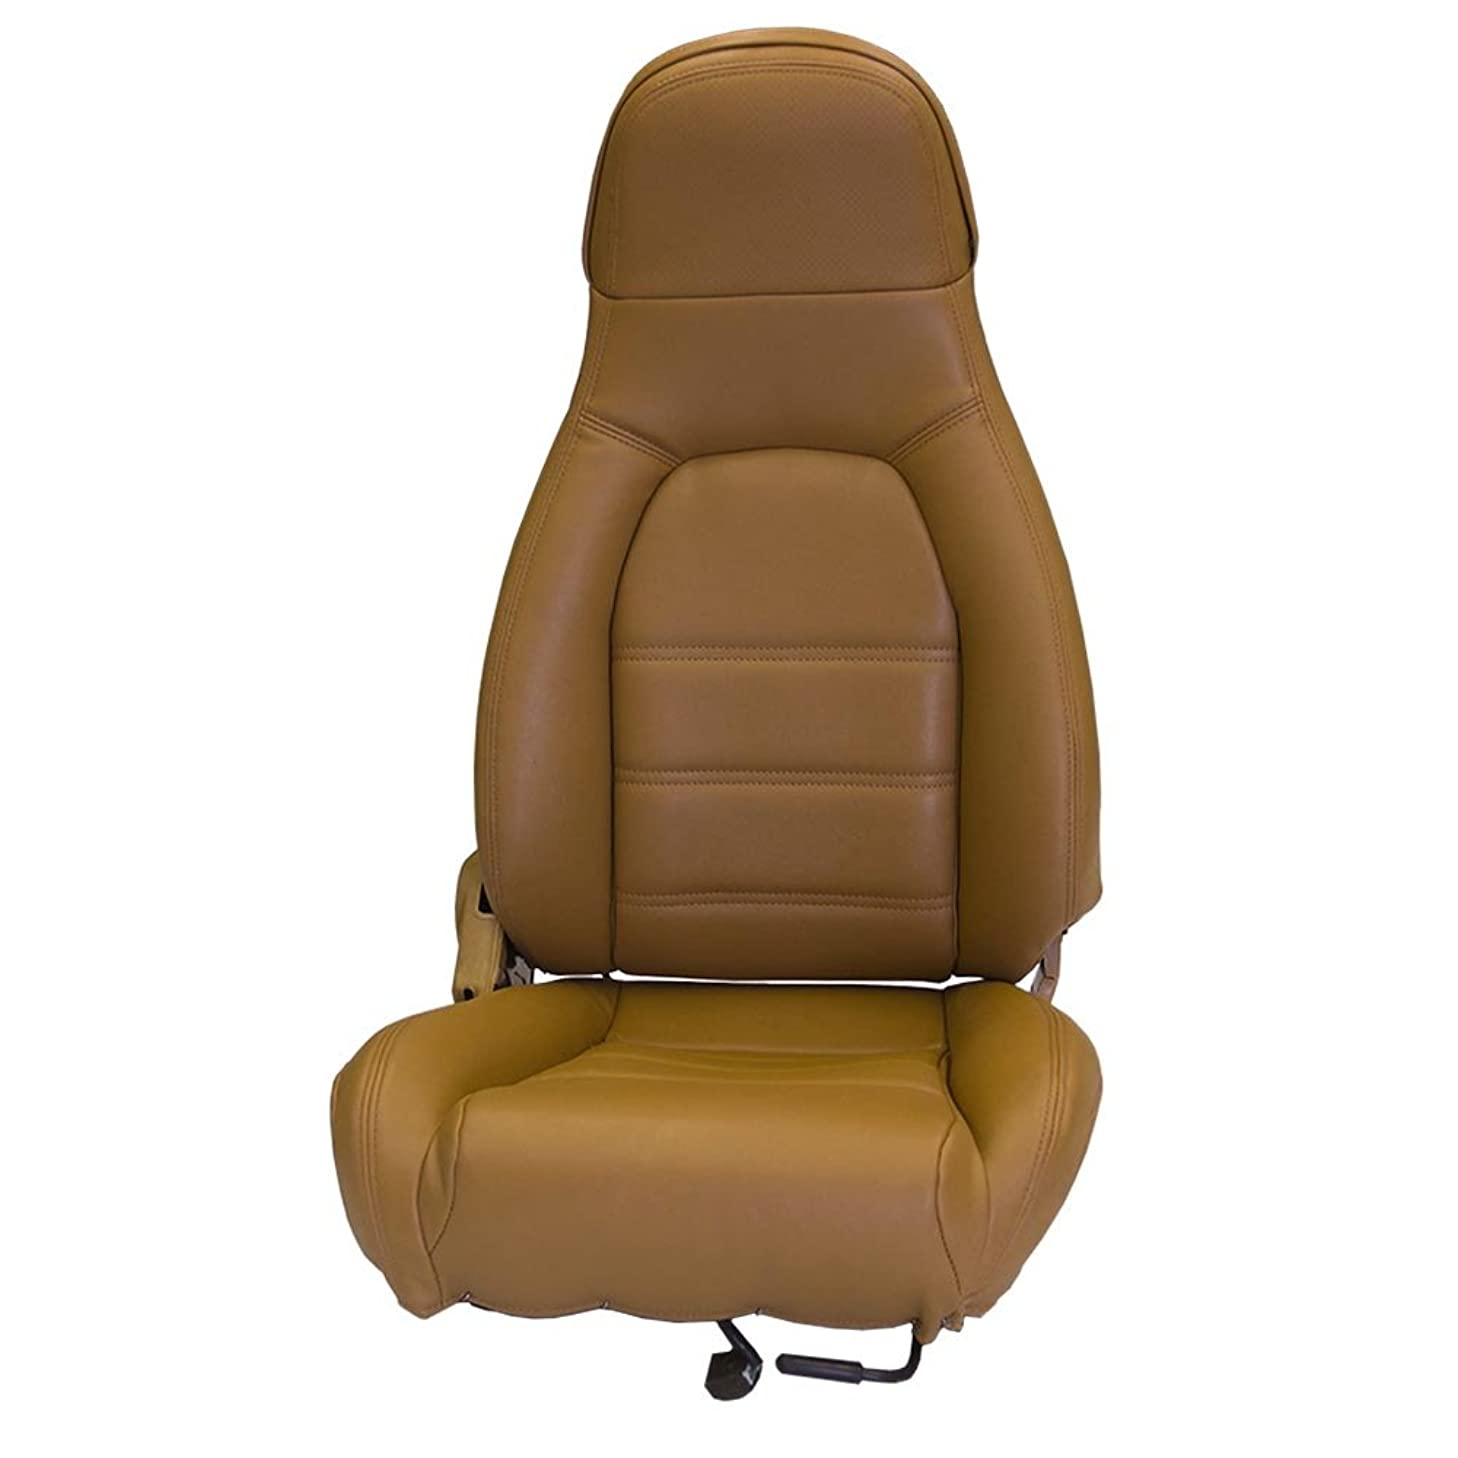 Sierra Auto Tops Mazda Miata Front Seat Cover Kit for 1990-1996 Standard Seats, Tan (Saddle) Simulated Leather